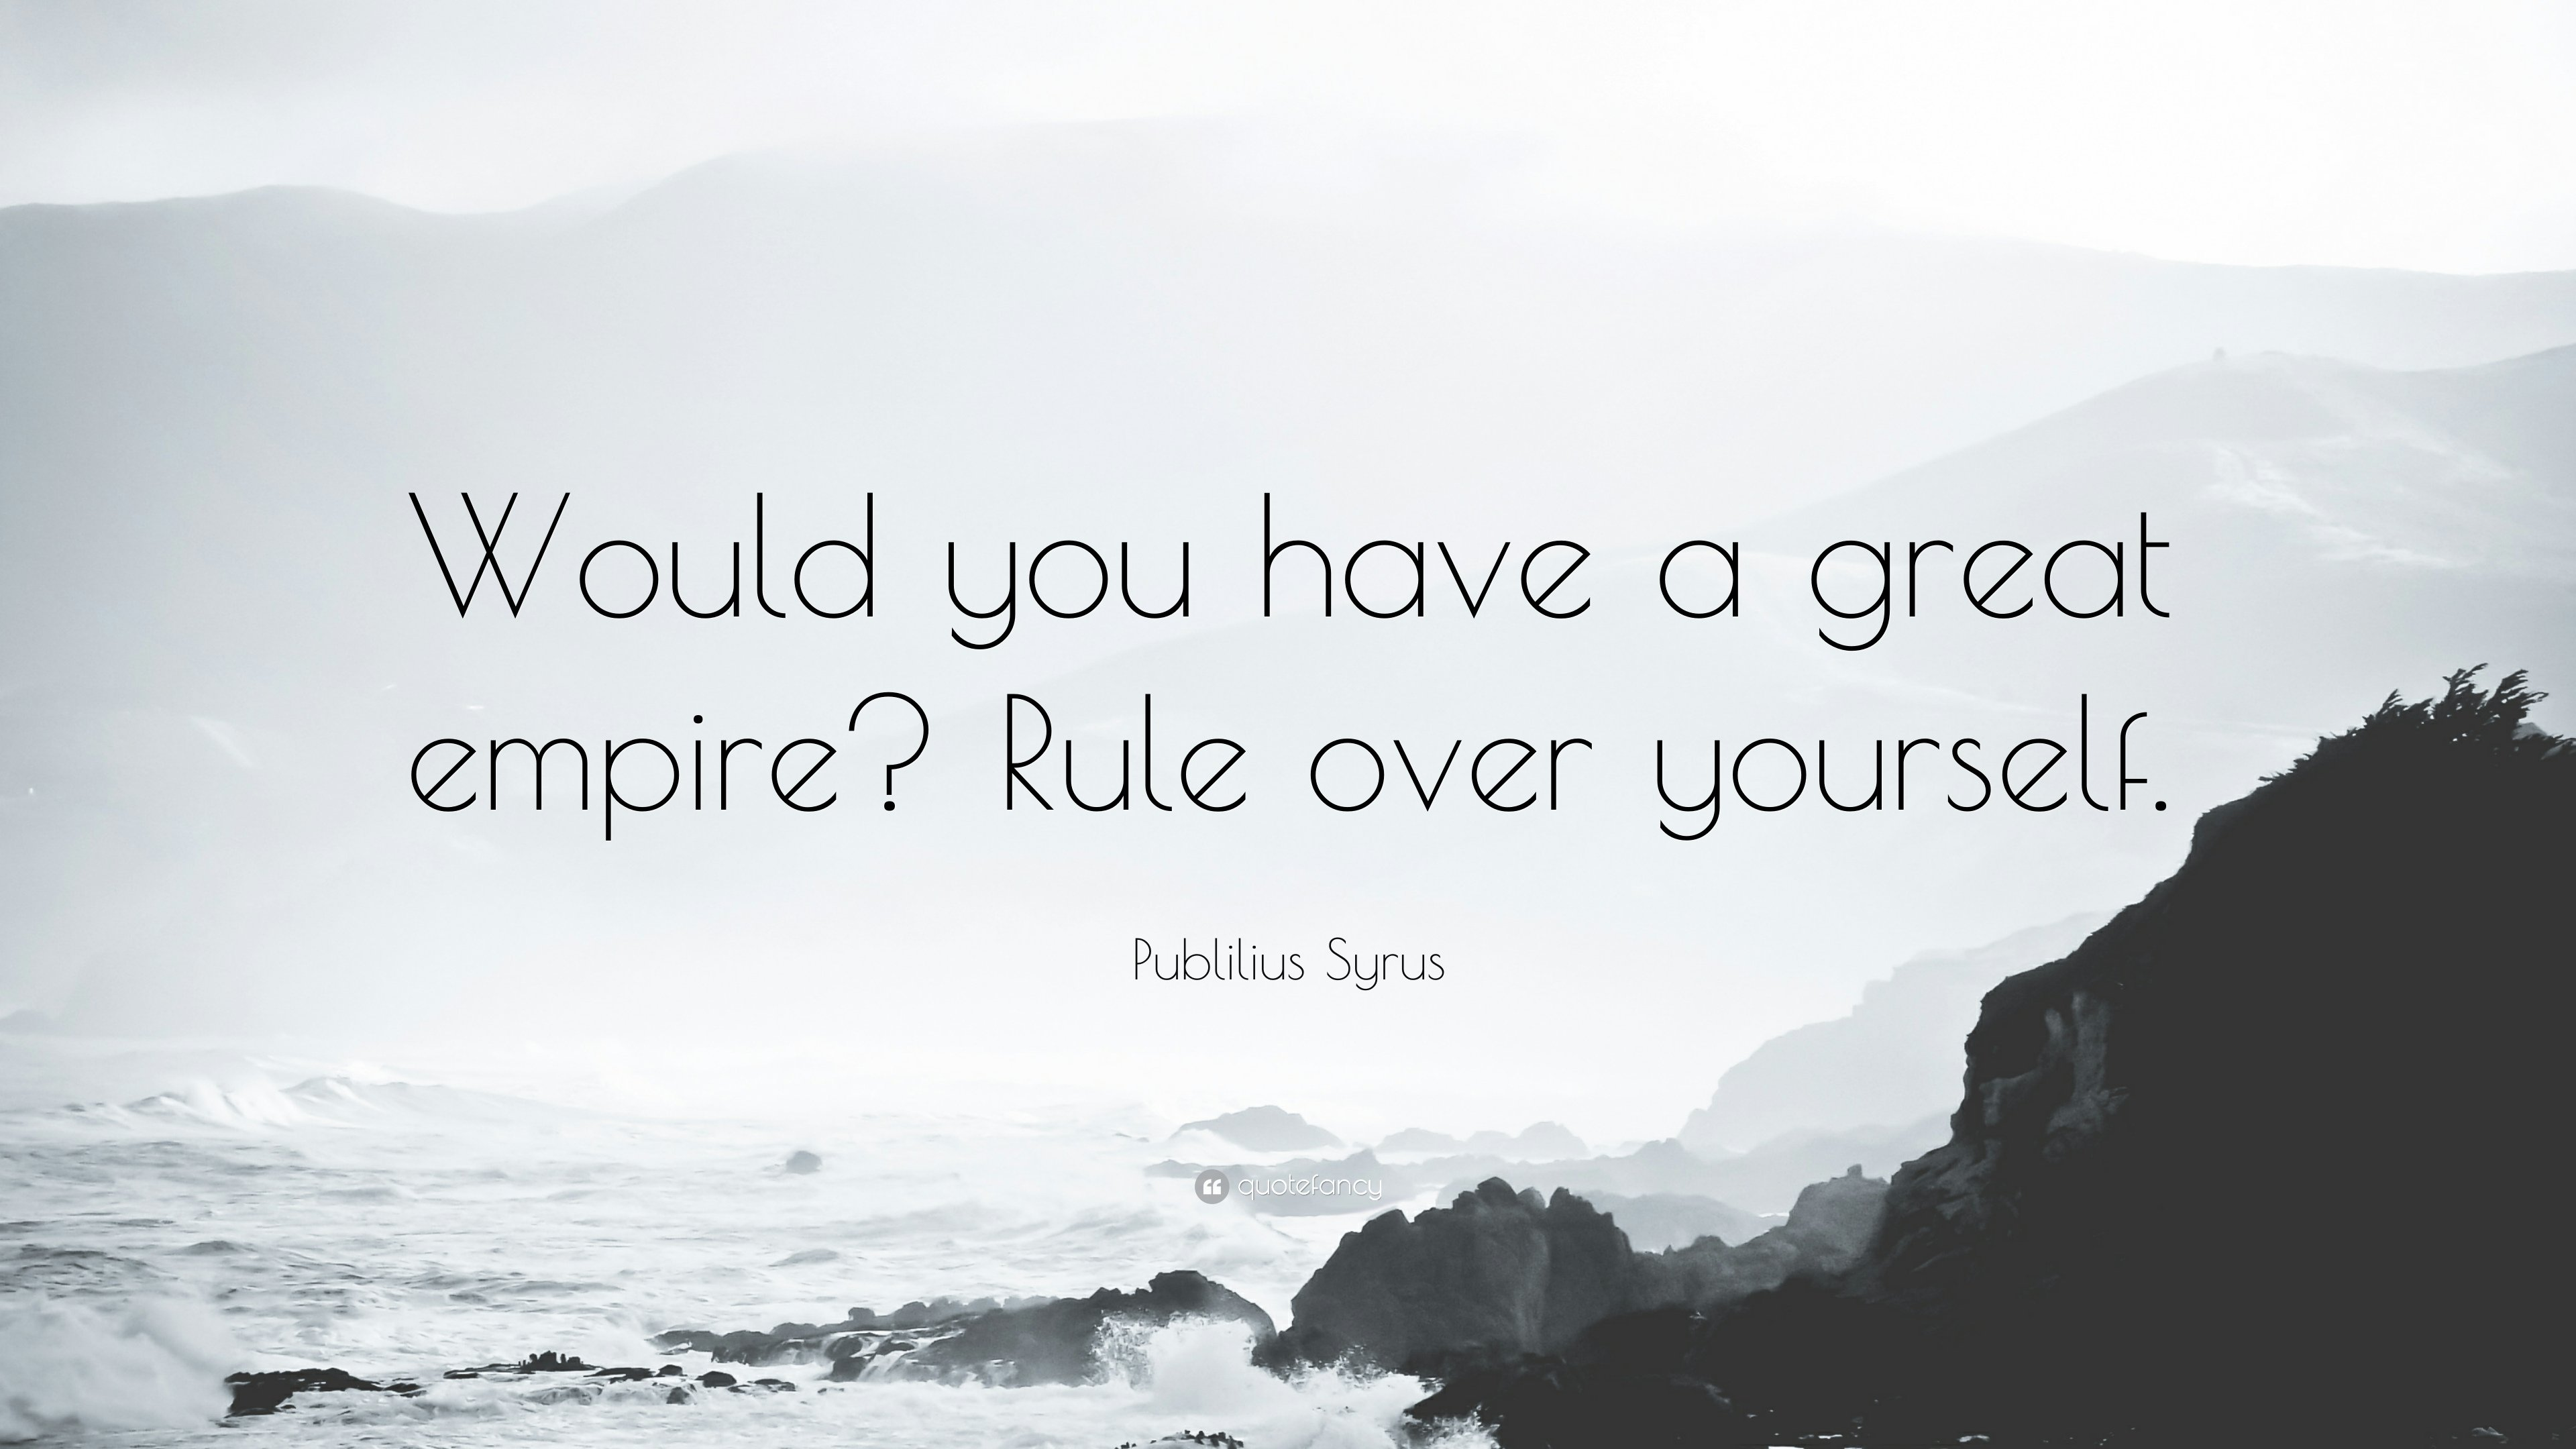 X/OJUL you have 91er empire? PULQ over goursdfl. https://inspirational.ly